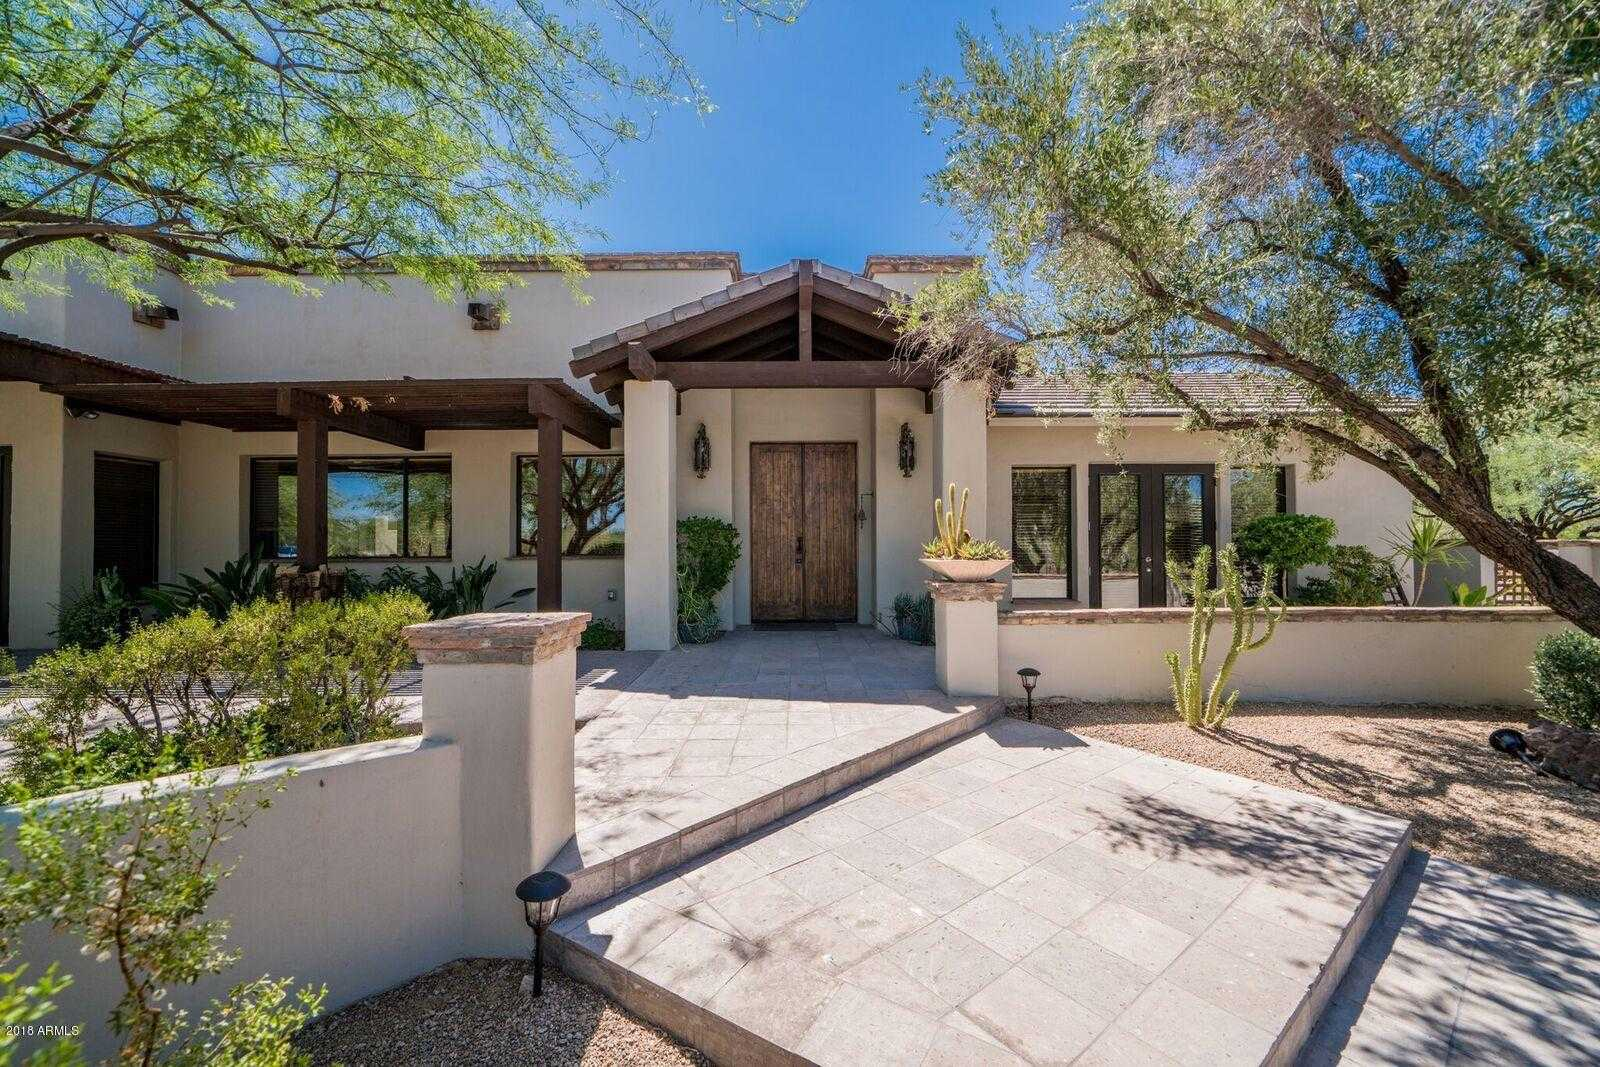 $1,800,000 - 4Br/5Ba - Home for Sale in Bret Hills, Paradise Valley